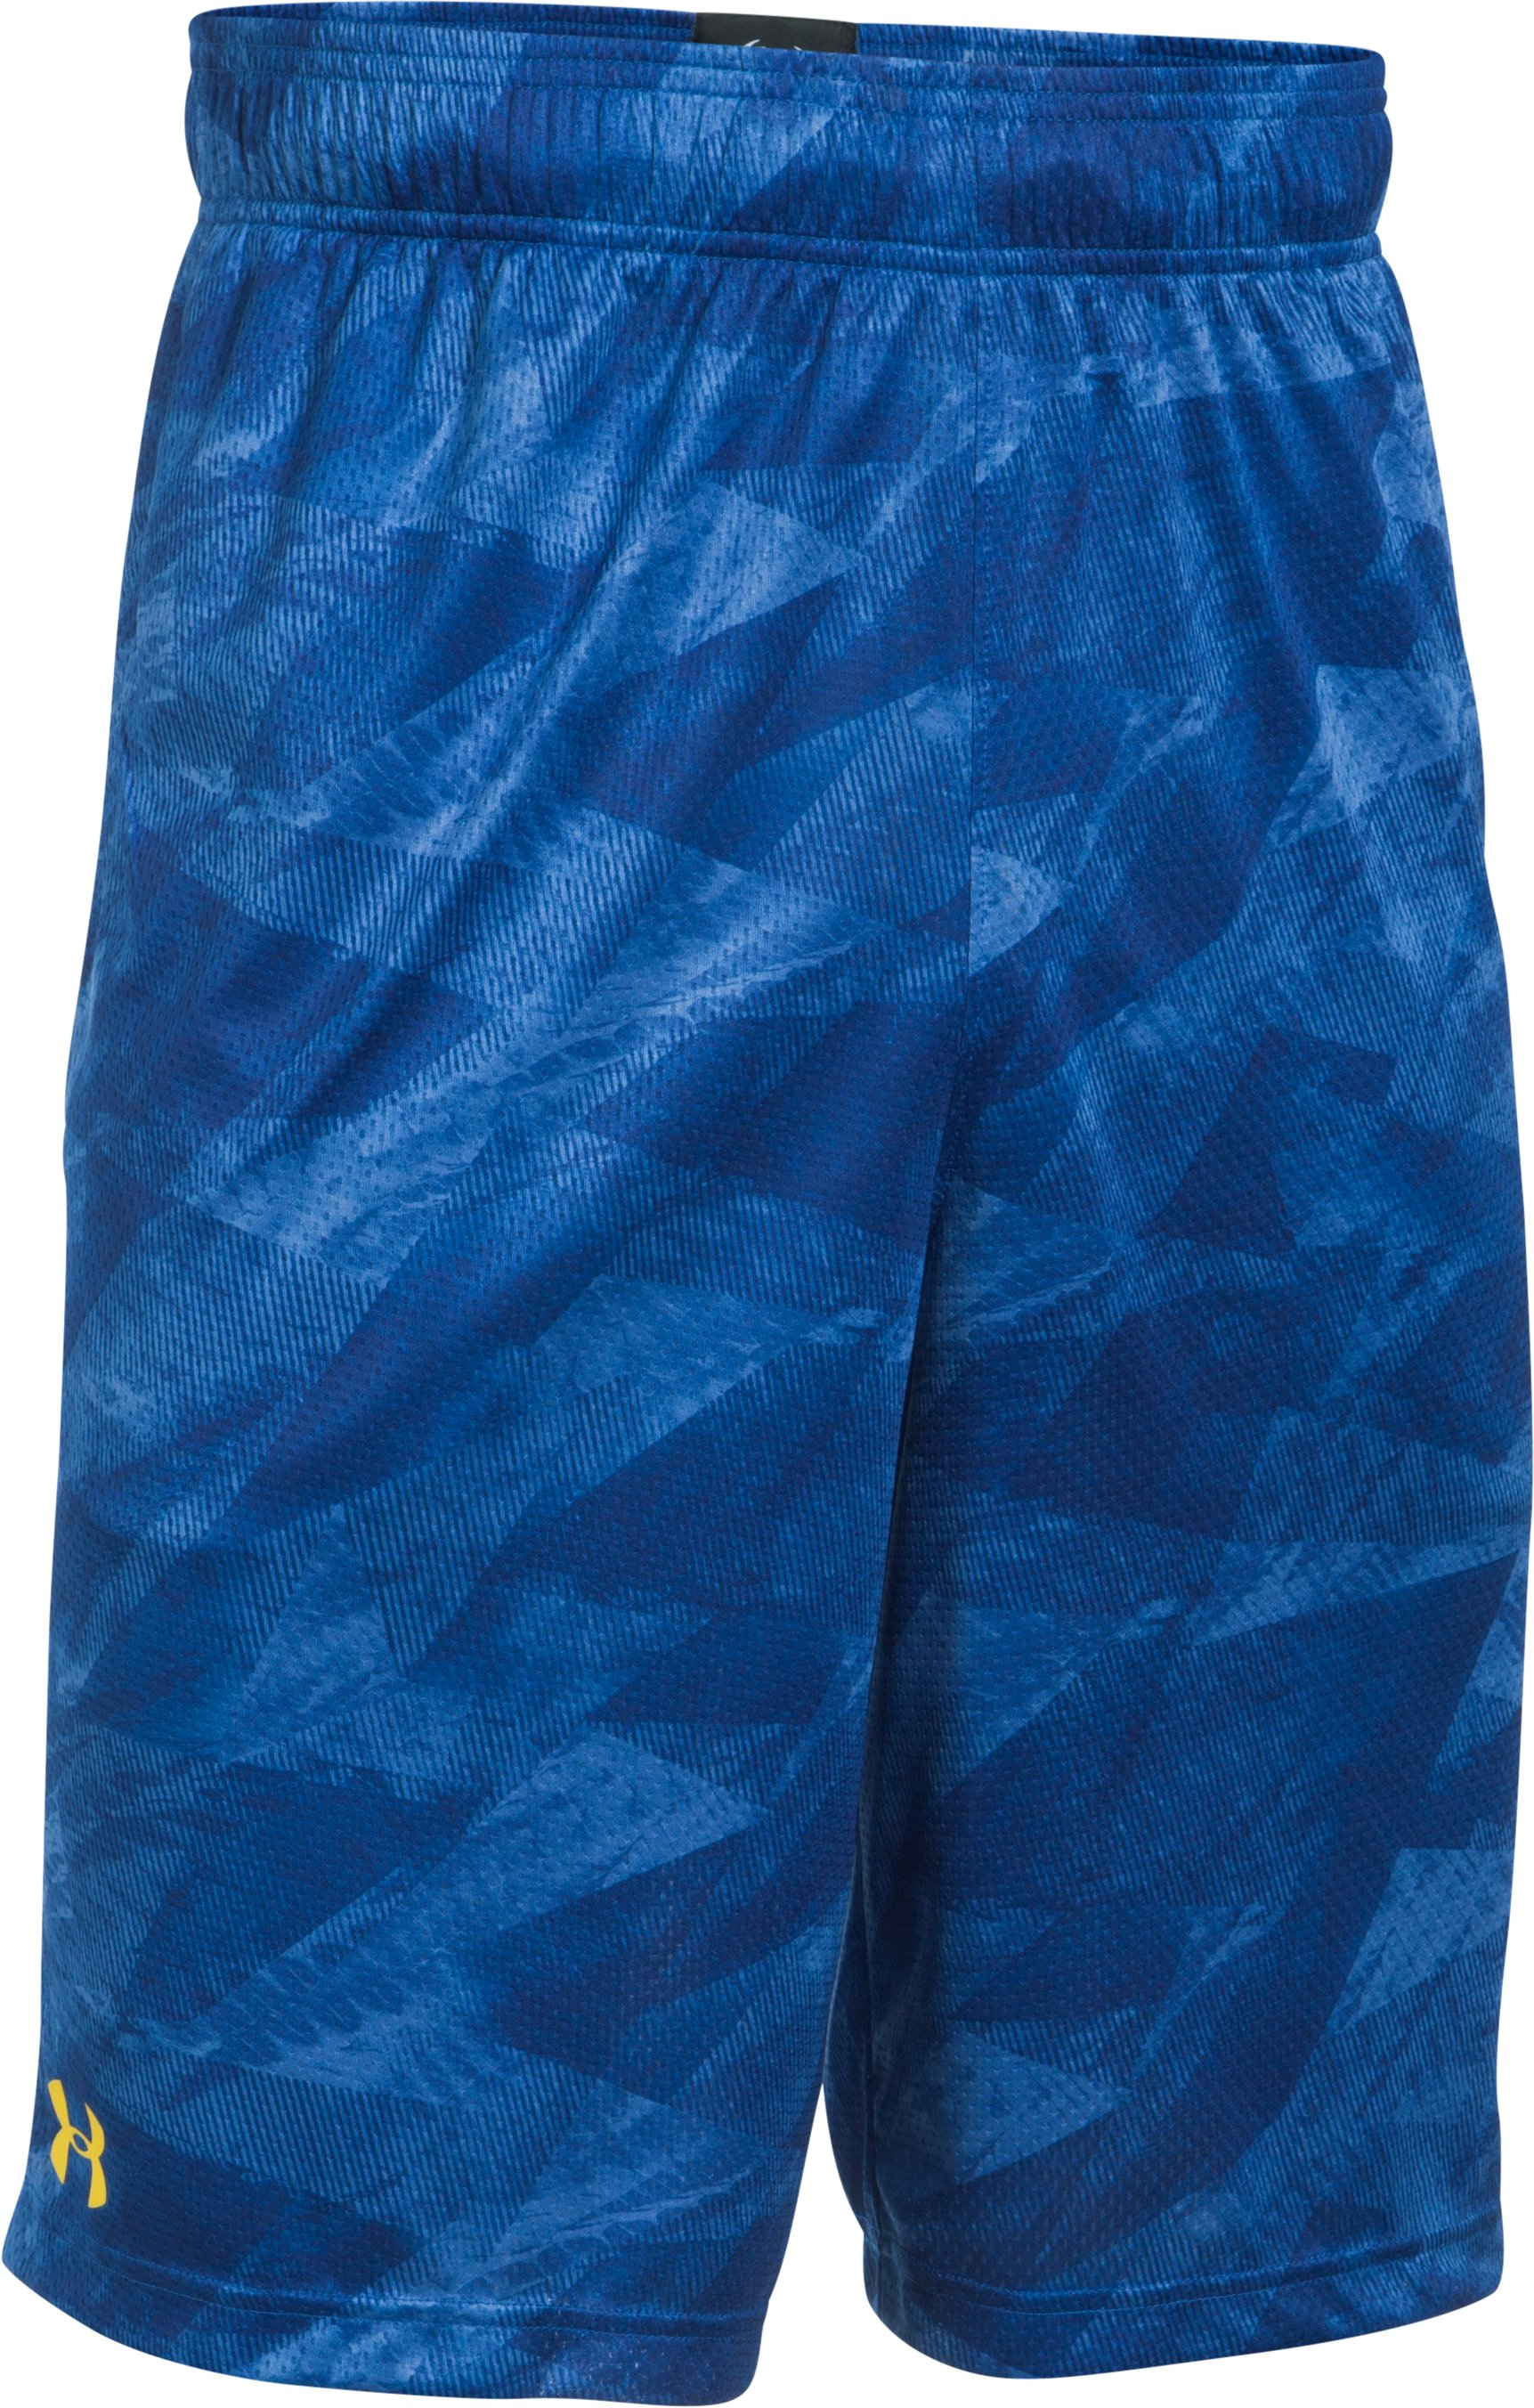 Men's SC30 Aero Wave Printed Shorts, Royal, undefined